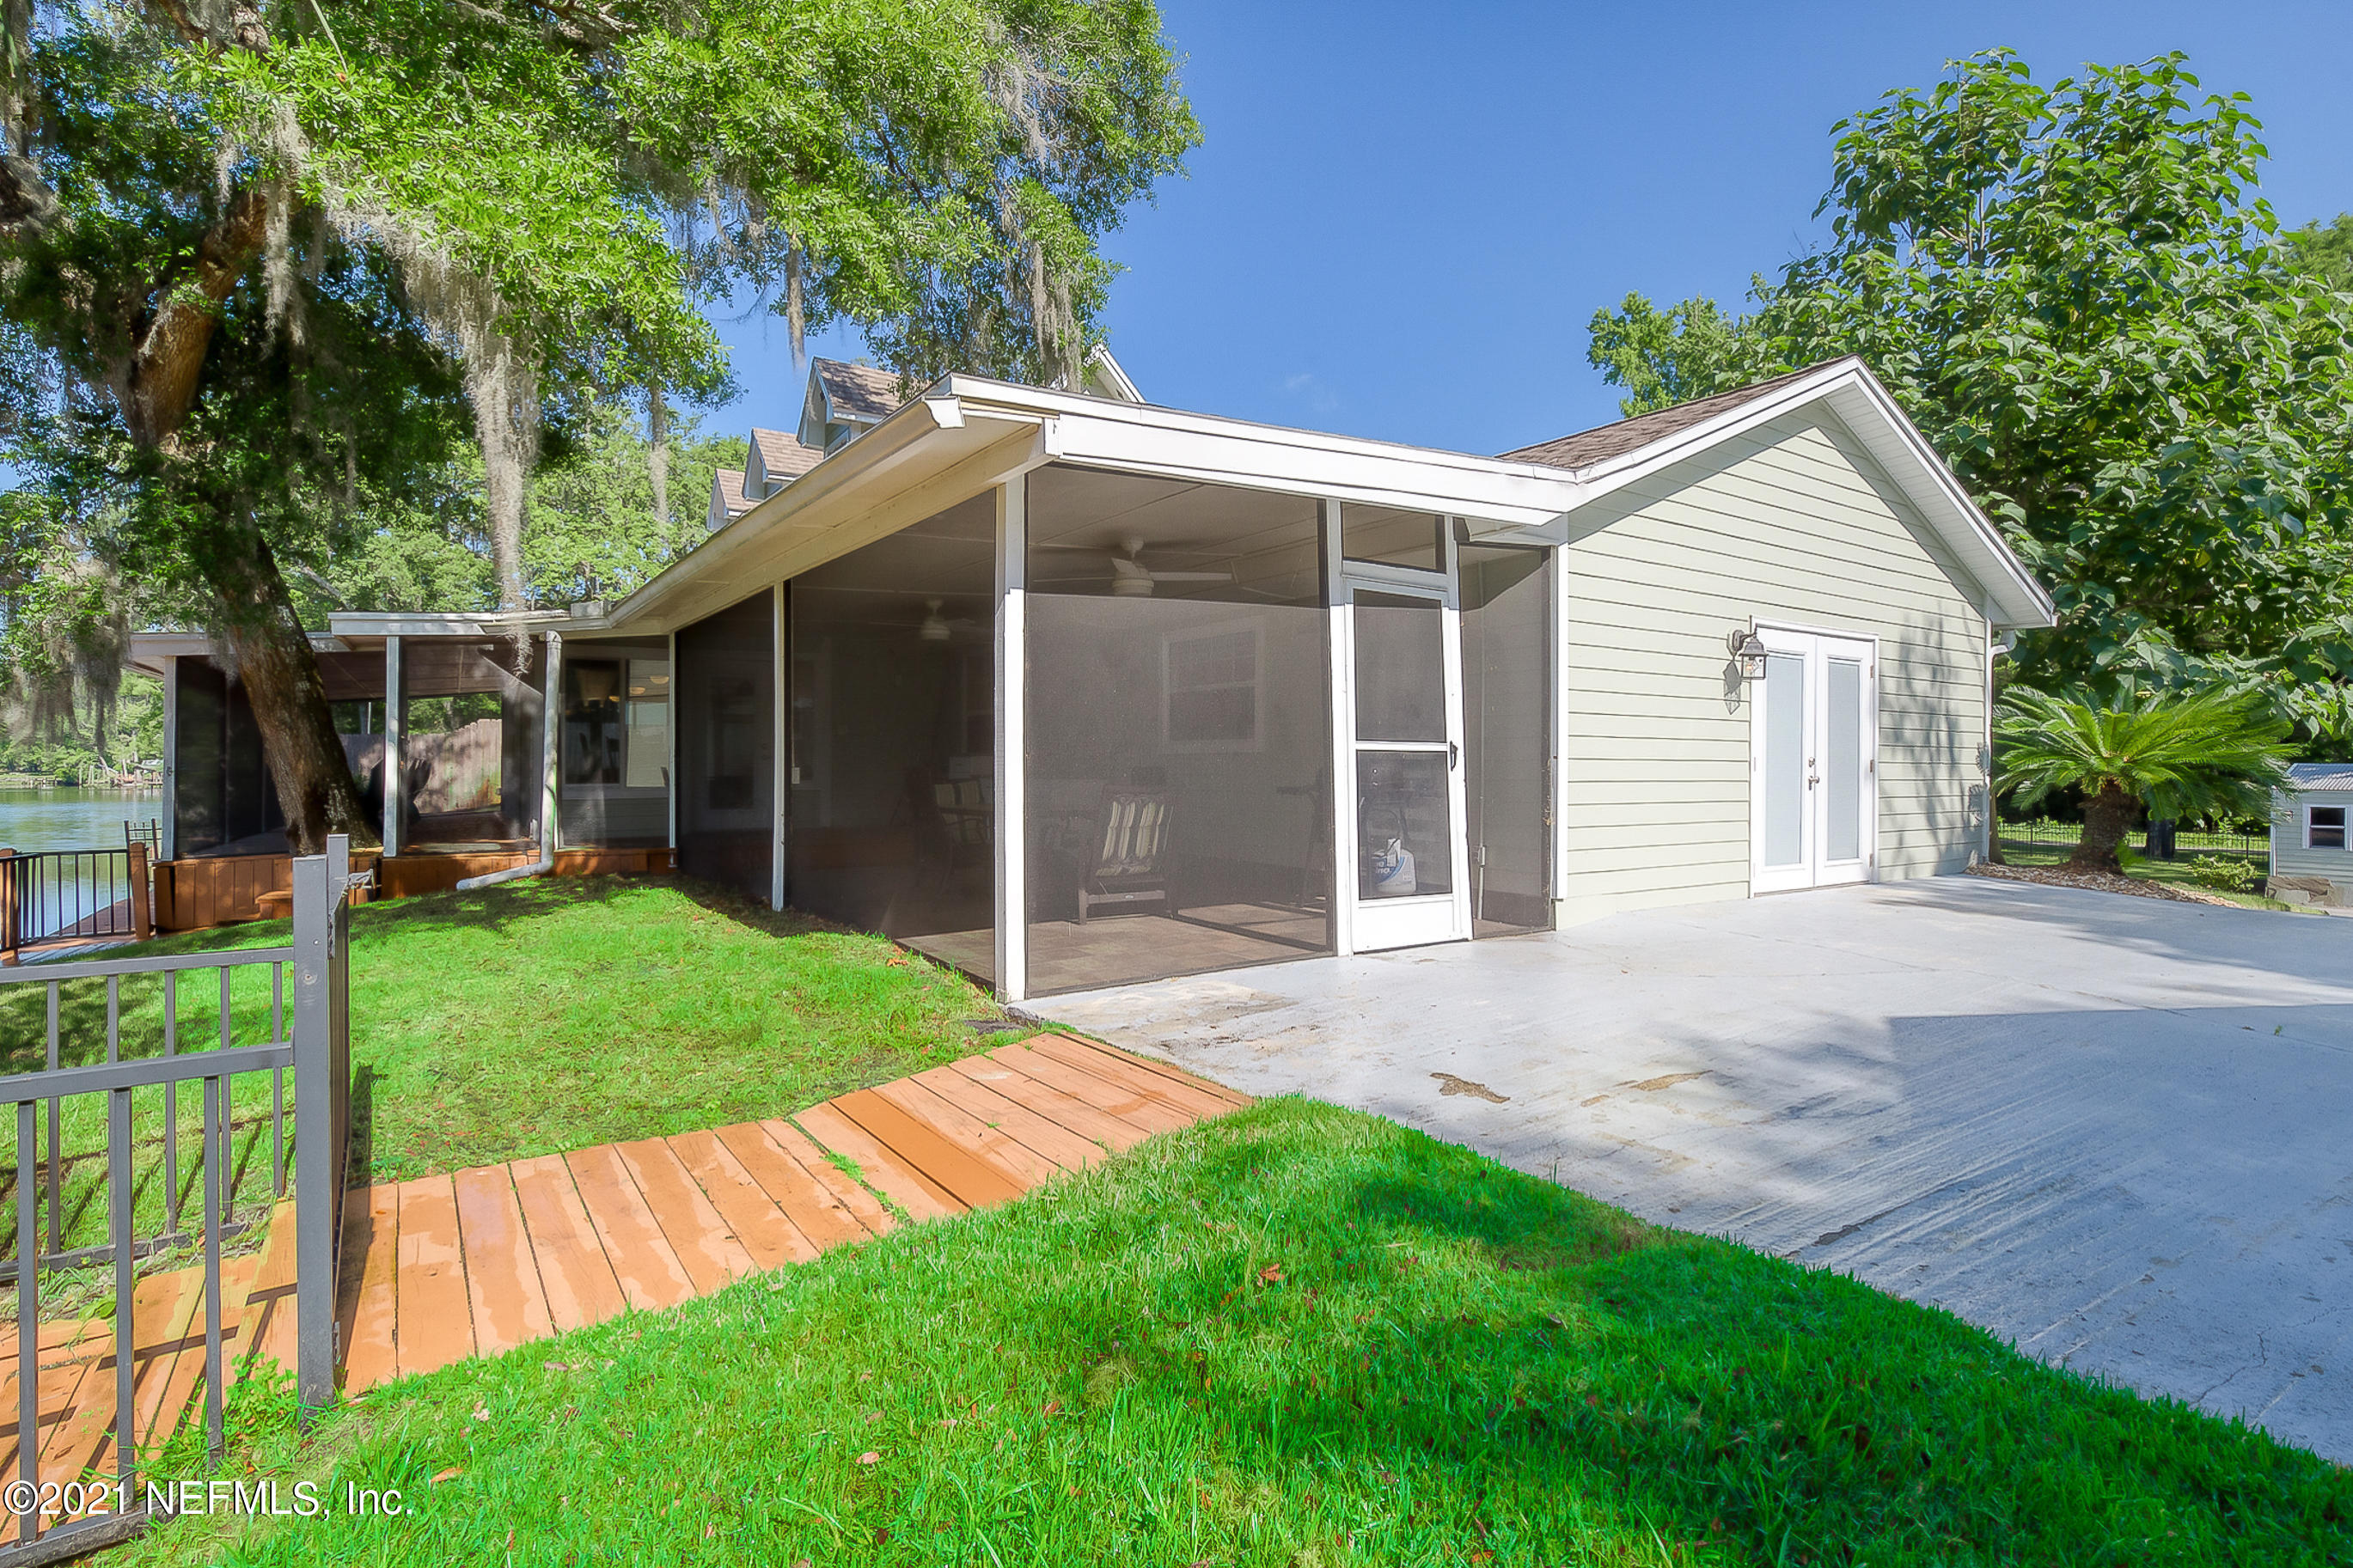 3709 MAIN, MIDDLEBURG, FLORIDA 32068, 4 Bedrooms Bedrooms, ,4 BathroomsBathrooms,Residential,For sale,MAIN,1104475